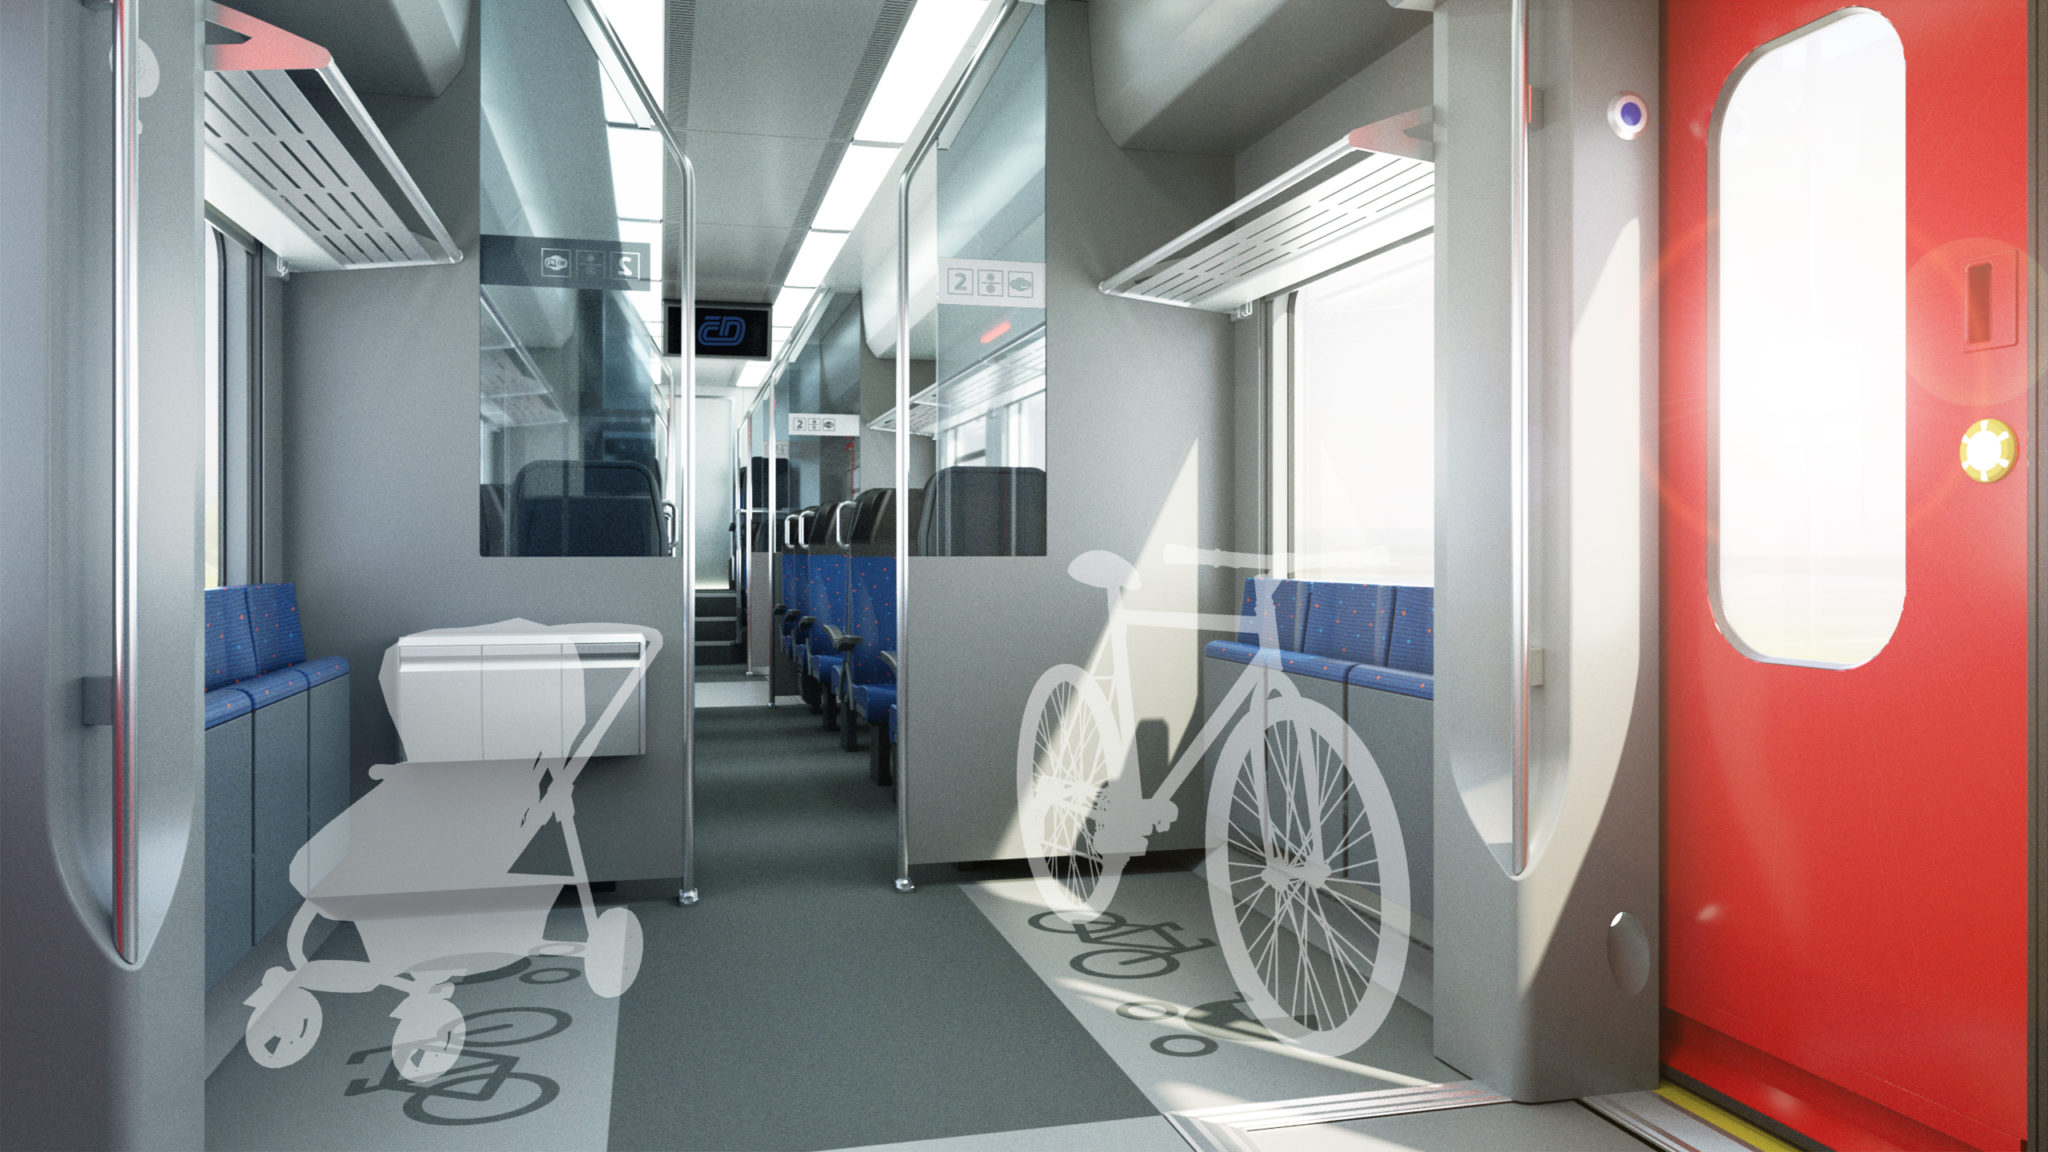 Skoda RegioPanter interior visualisation - bike storage